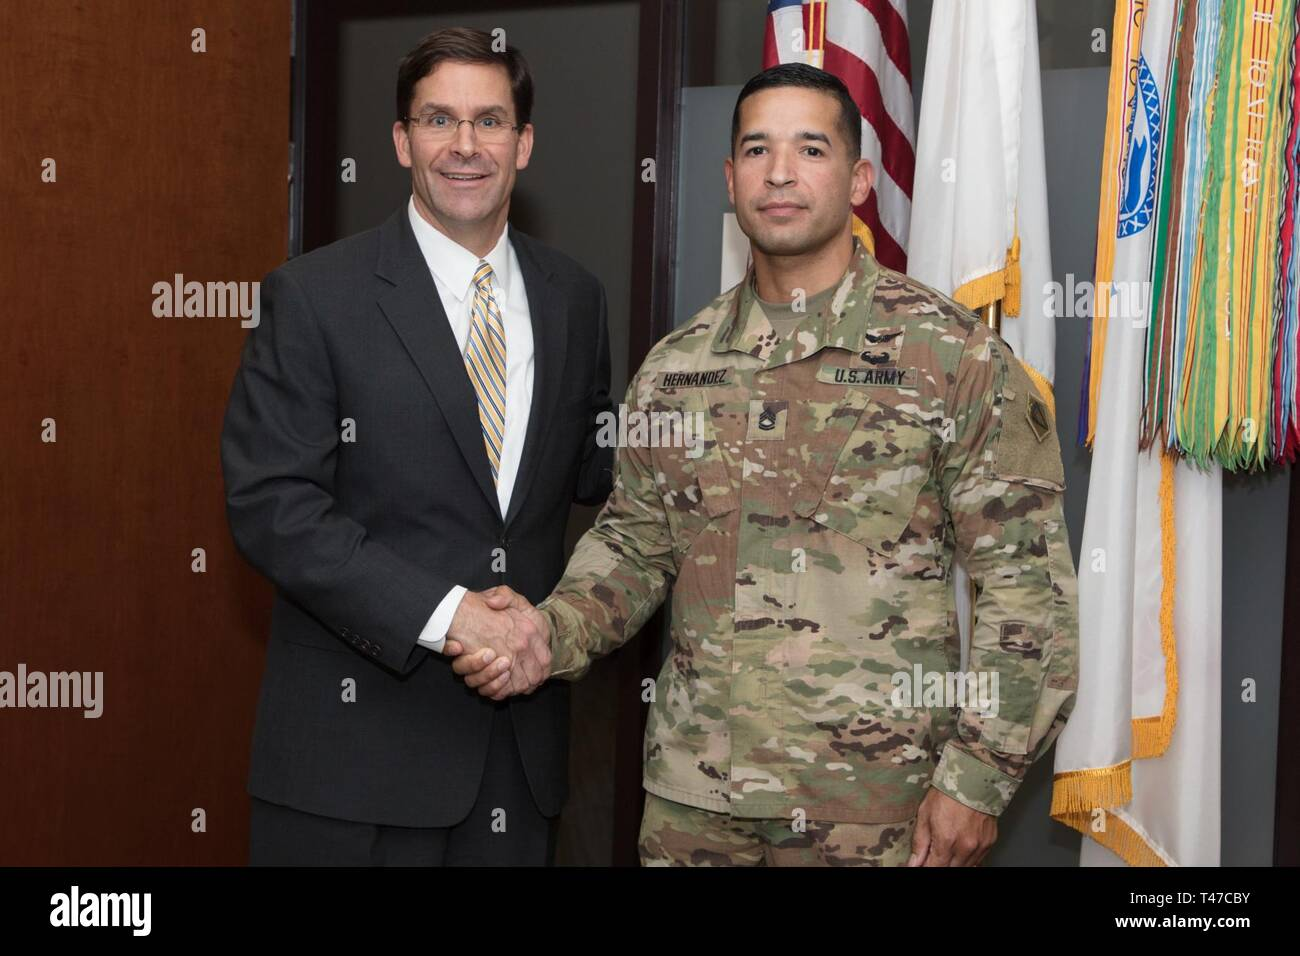 Leading Military Officer Stock Photos & Leading Military Officer